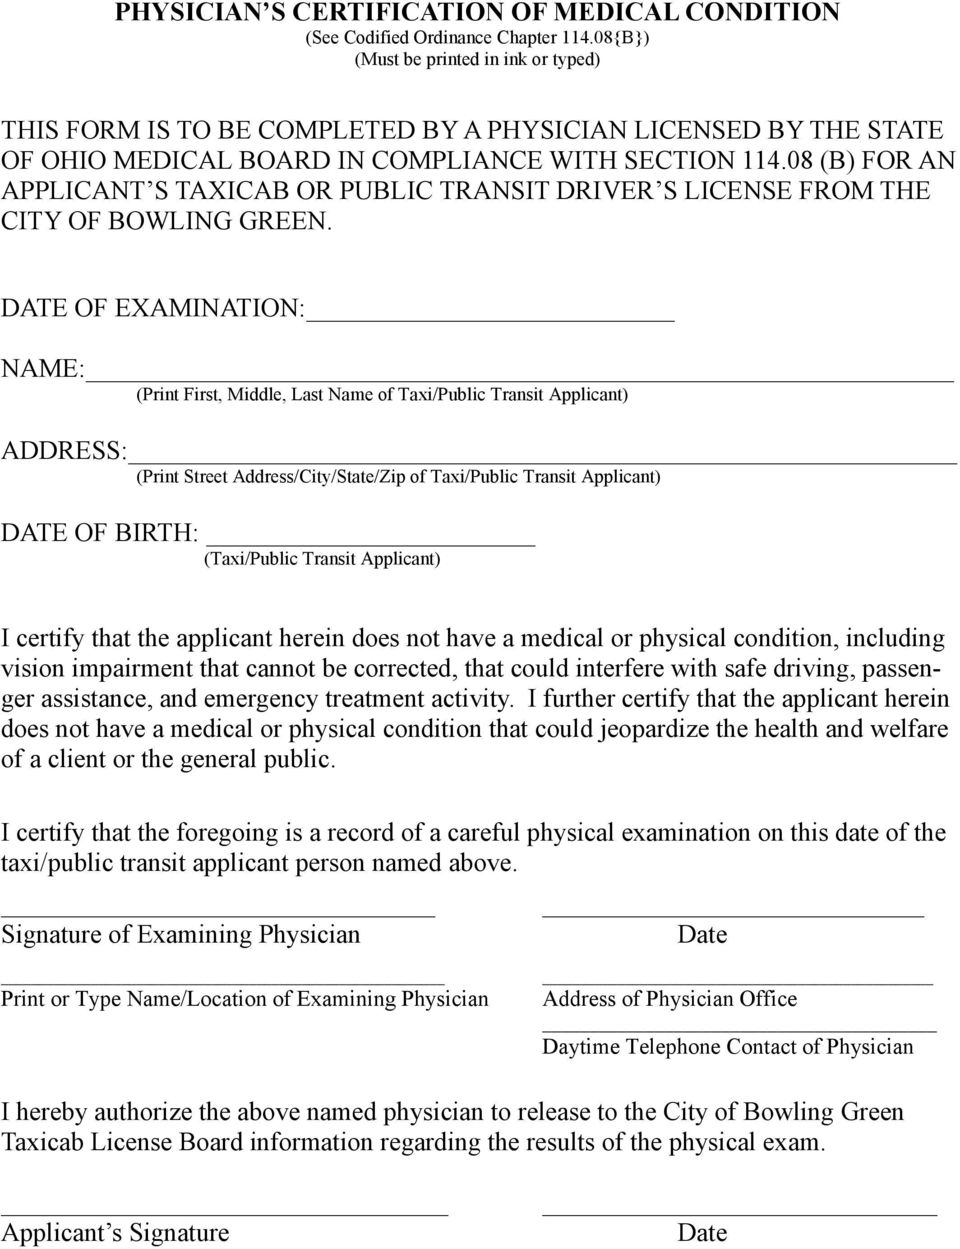 08 (B) FOR AN APPLICANT S TAXICAB OR PUBLIC TRANSIT DRIVER S LICENSE FROM THE CITY OF BOWLING GREEN.